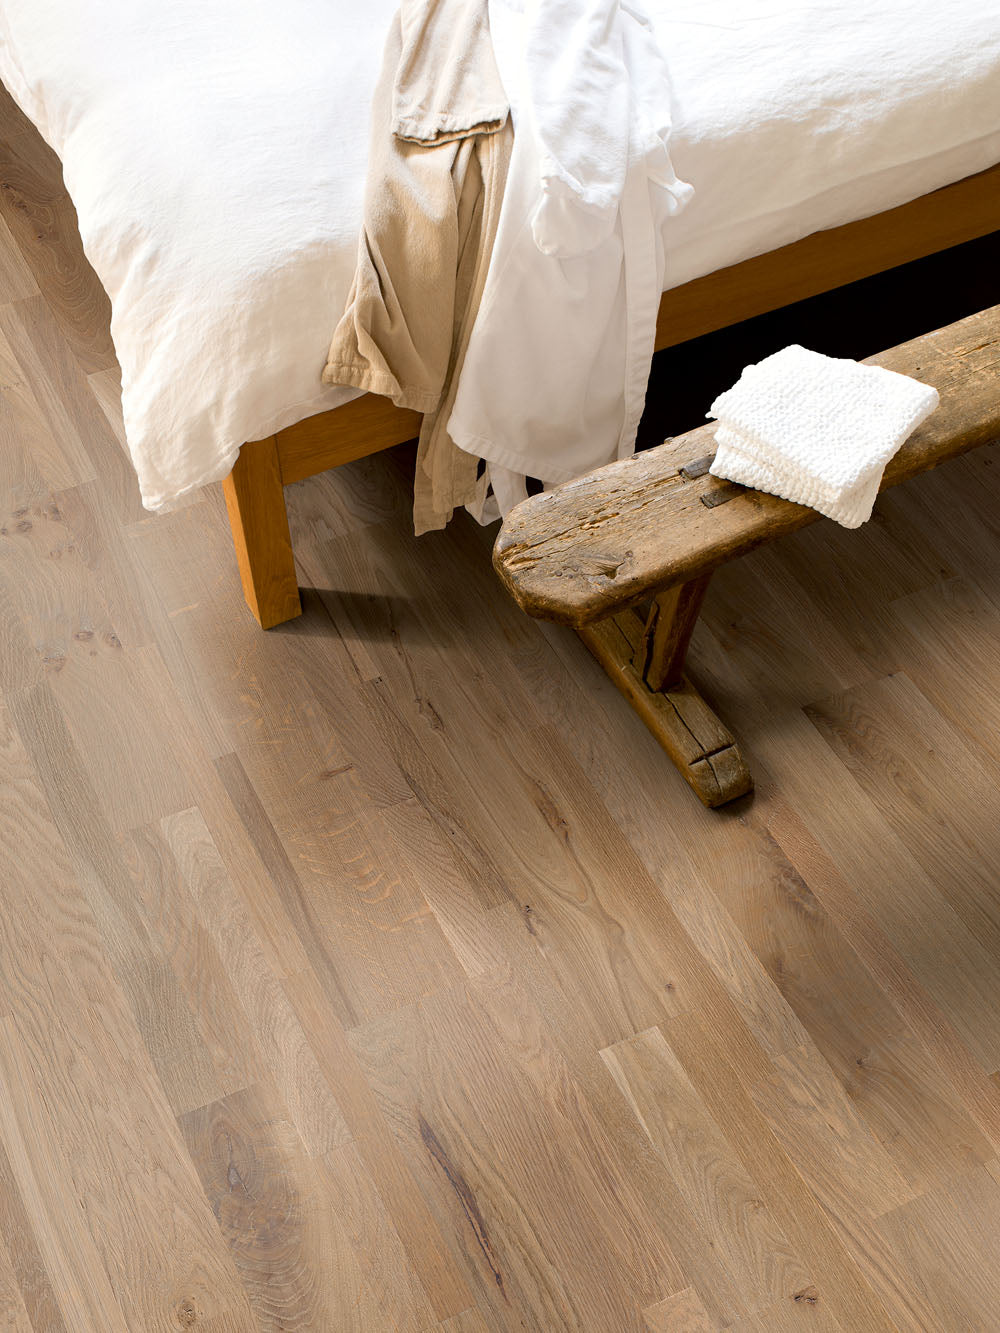 Benefits of recycled timber flooring